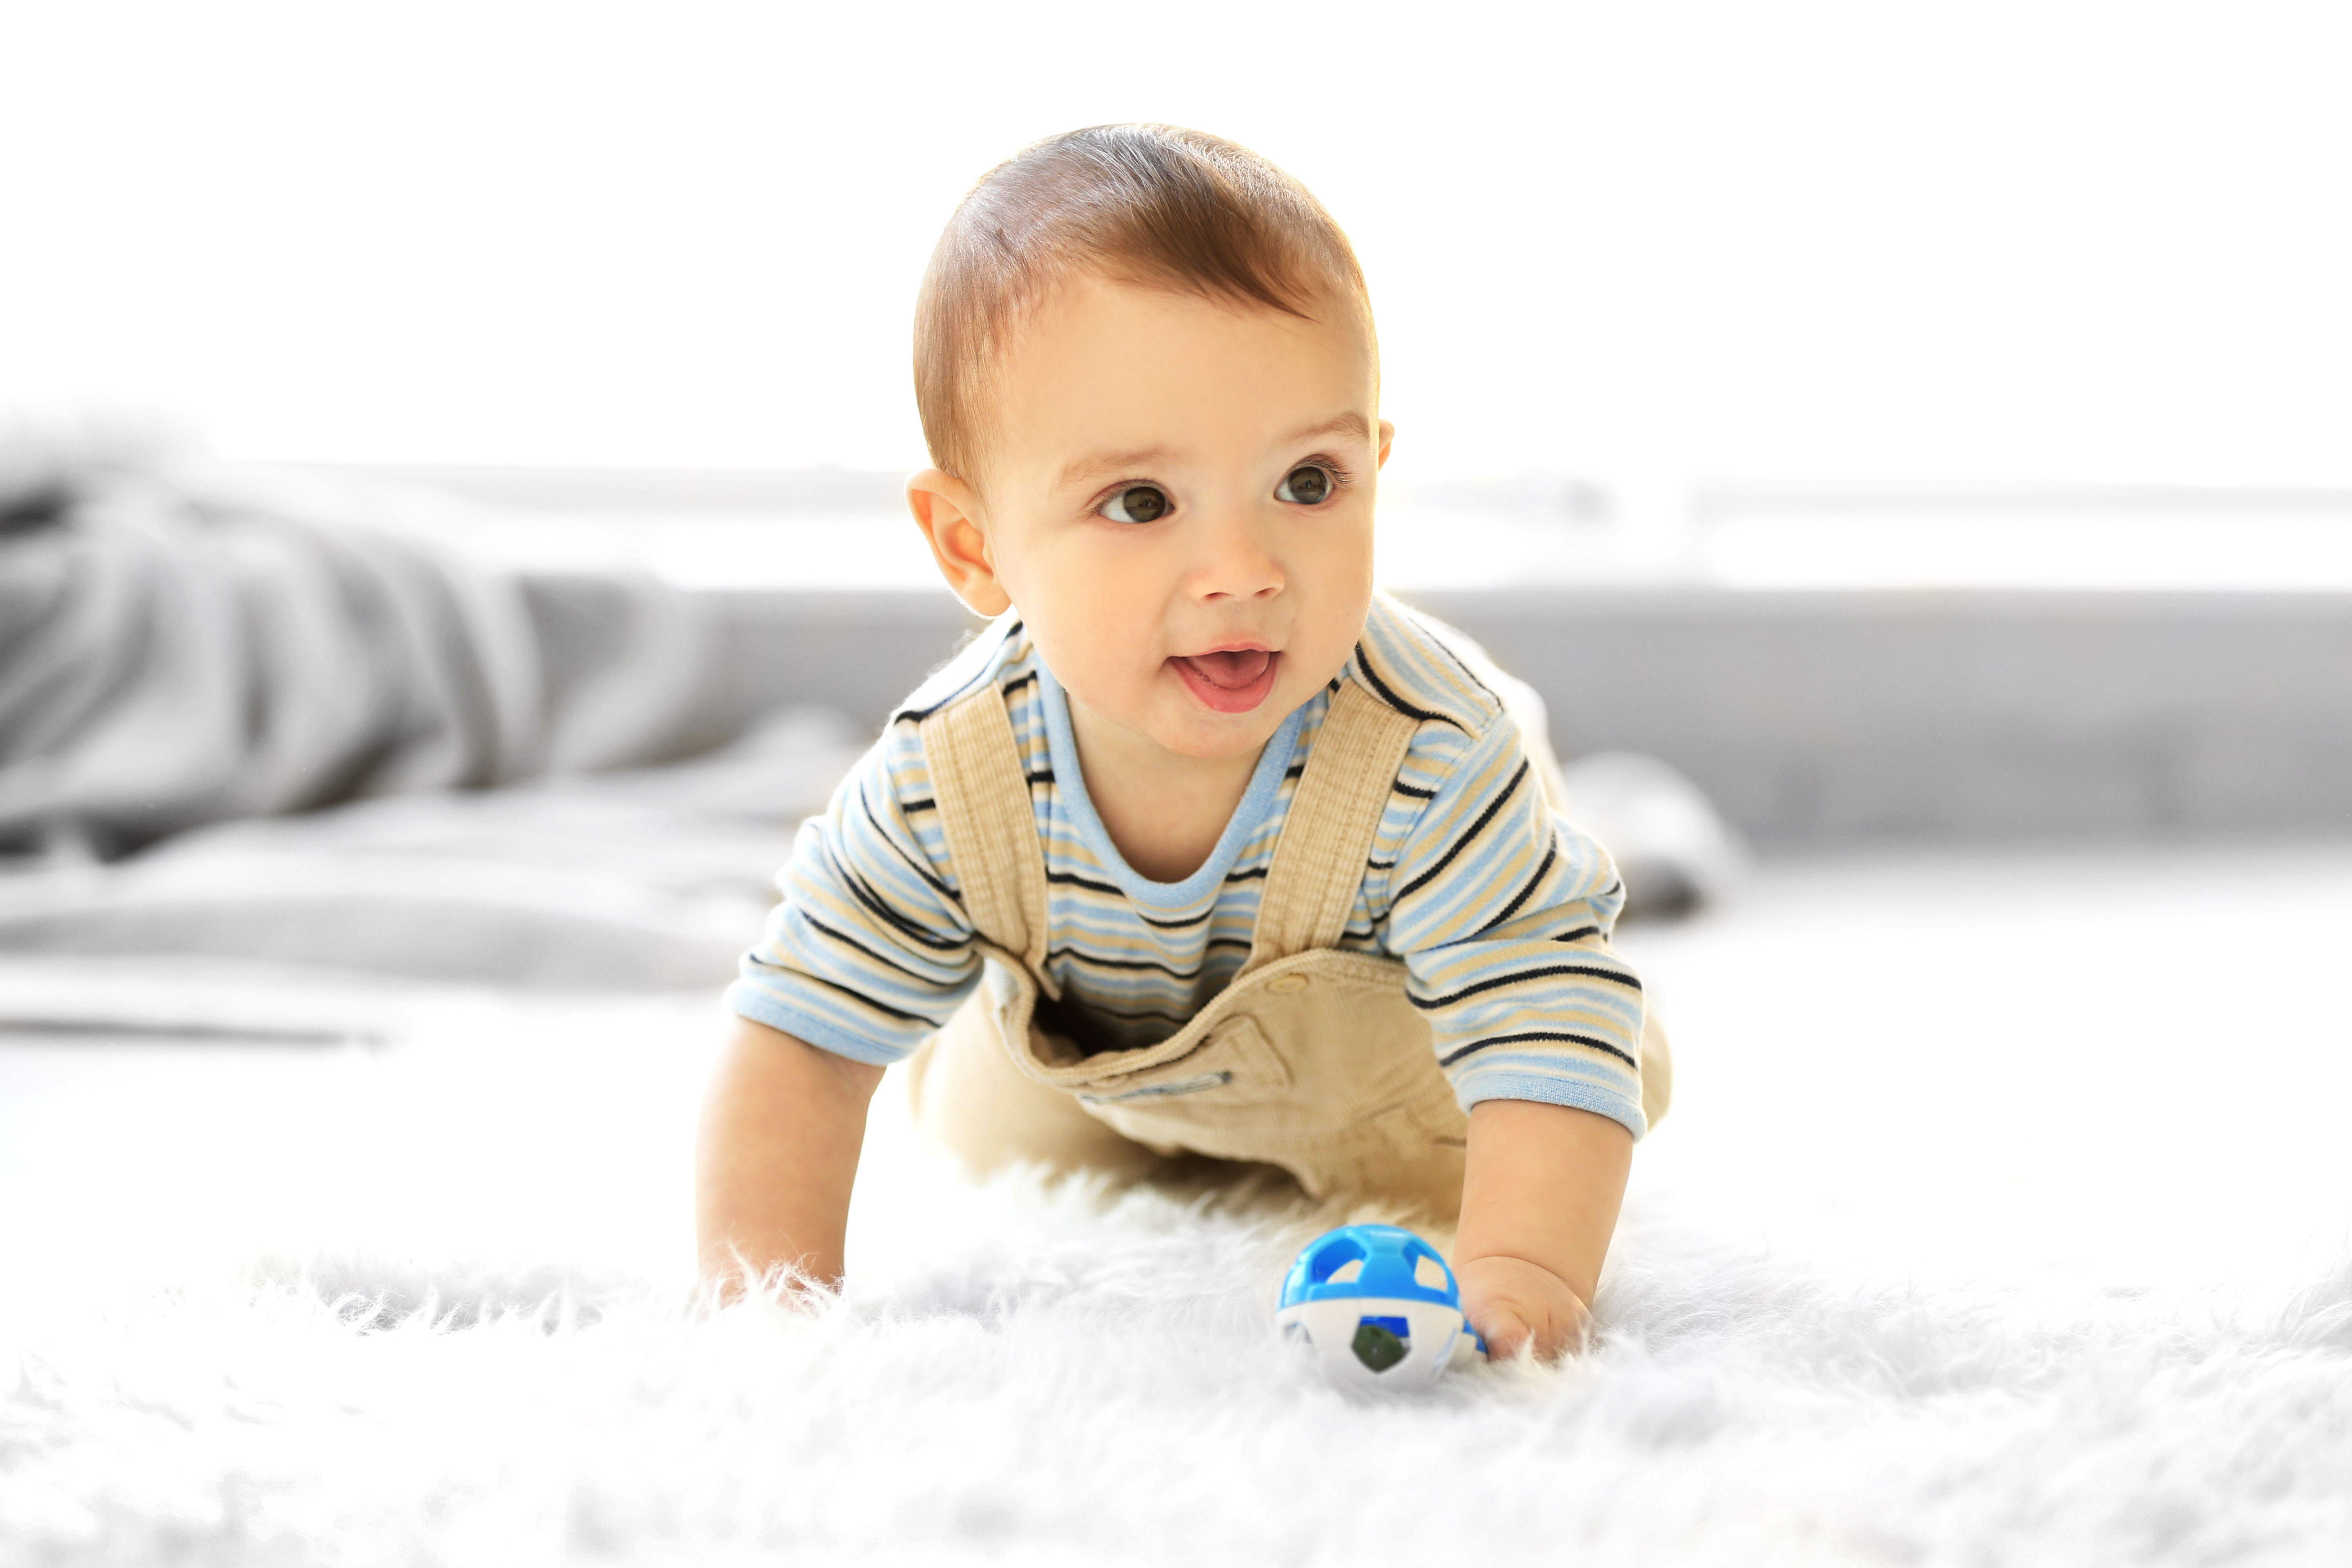 150 Cute And Funny Nicknames For Your Awesome Baby Boy